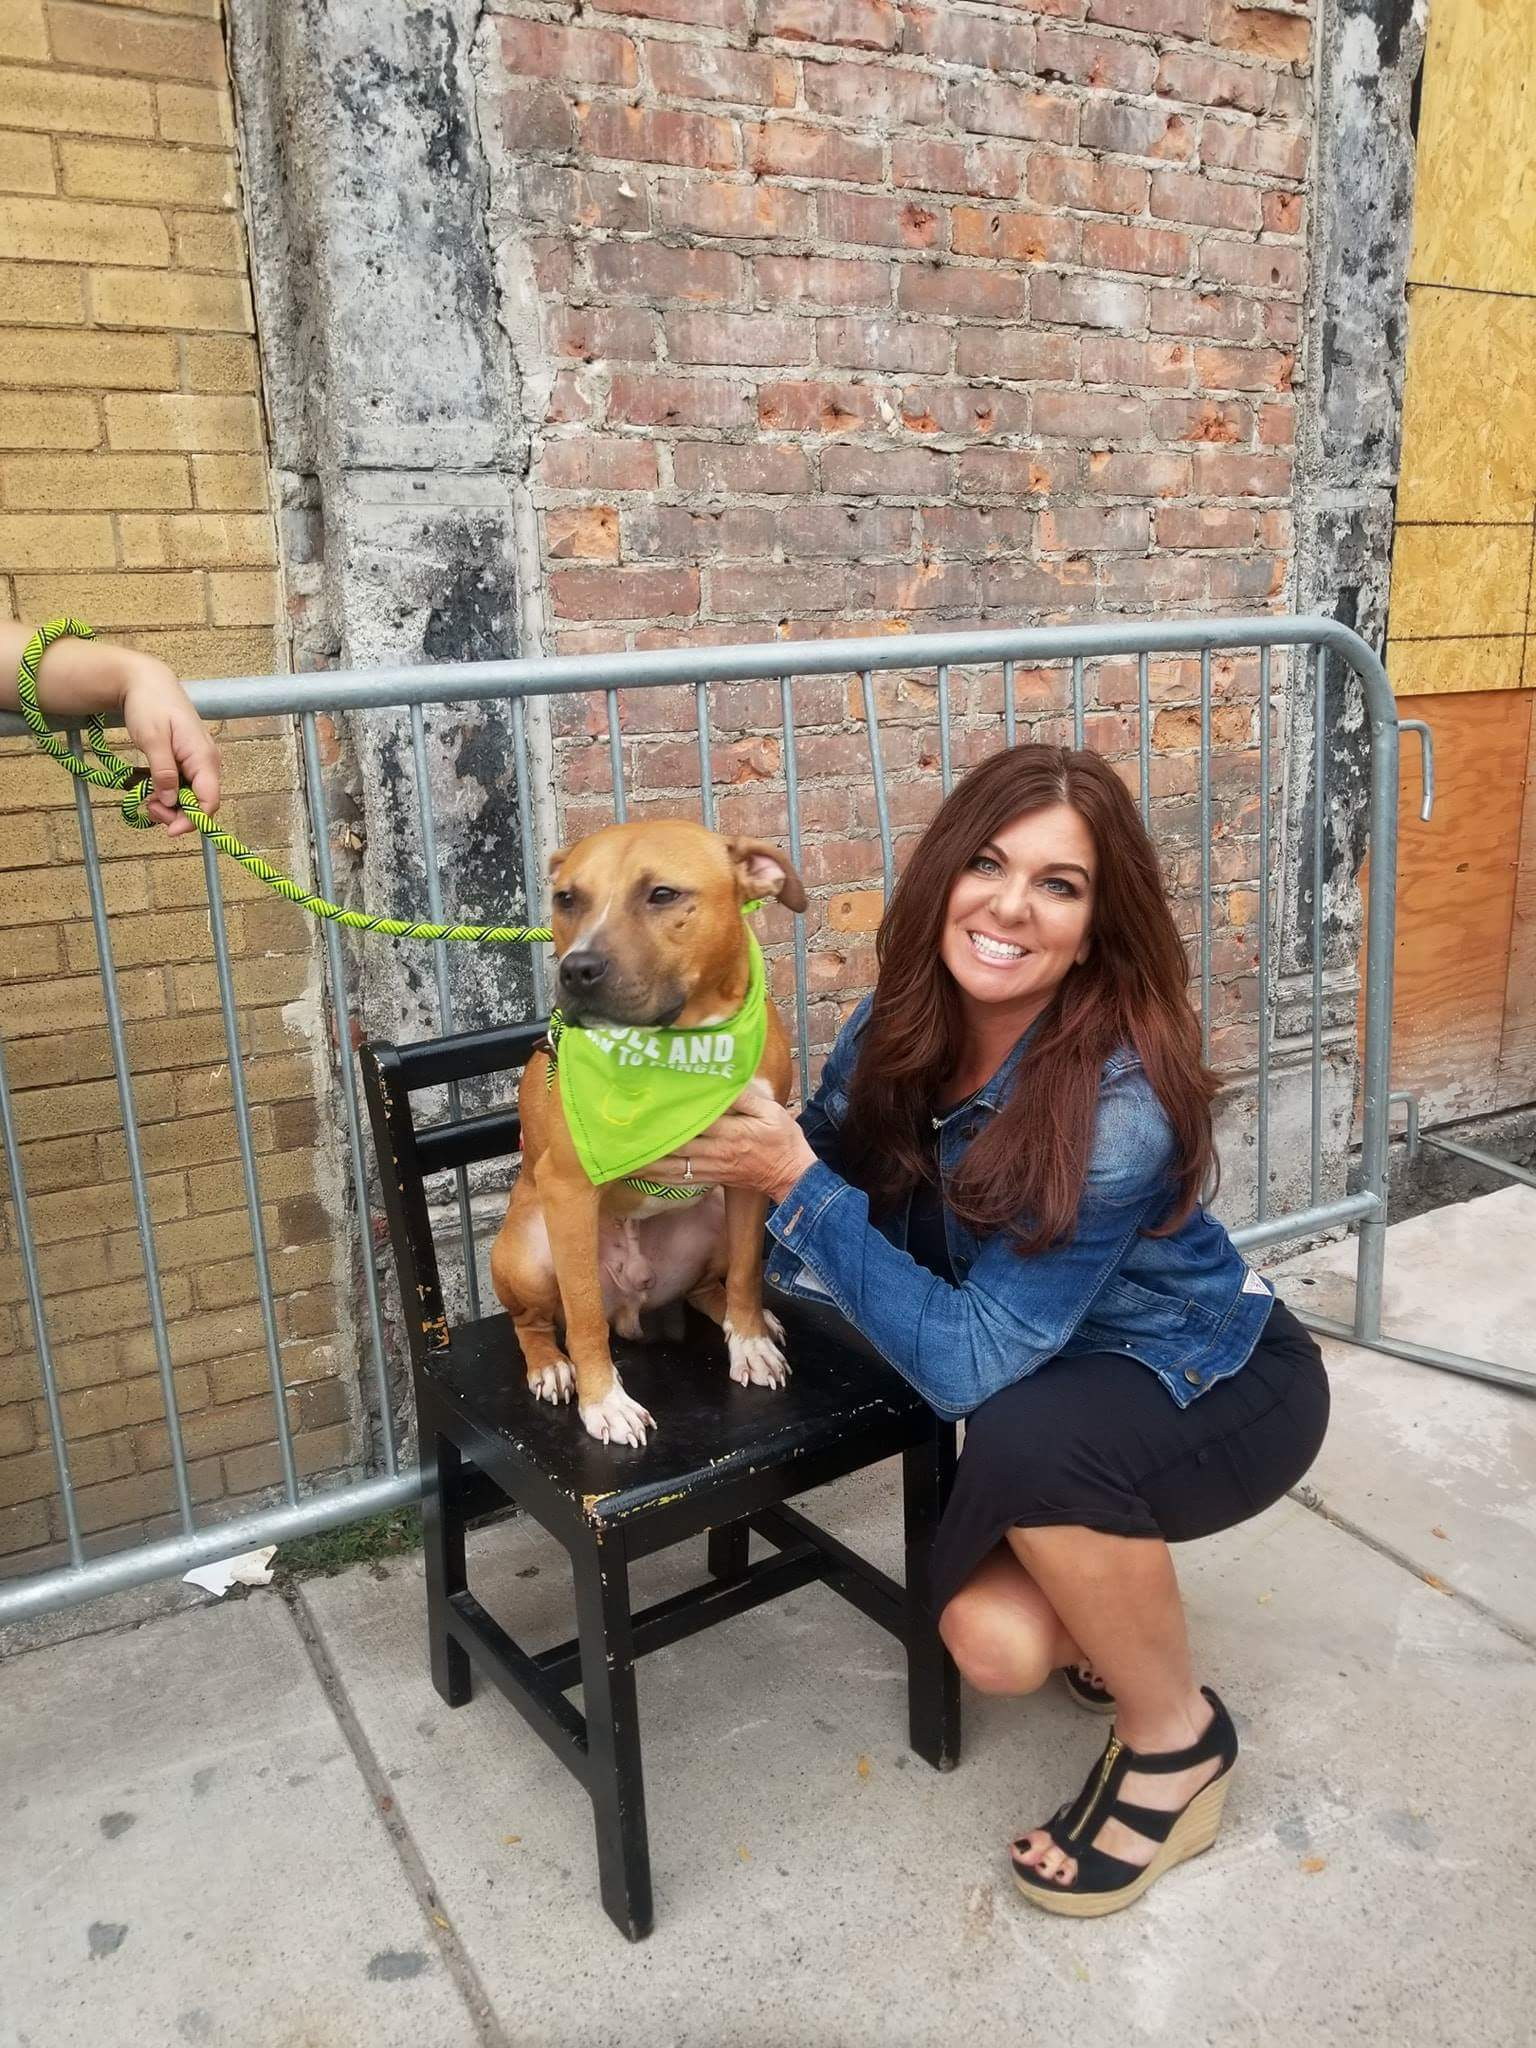 Christine from Wag 'N' Tails posing with pit bull dogs